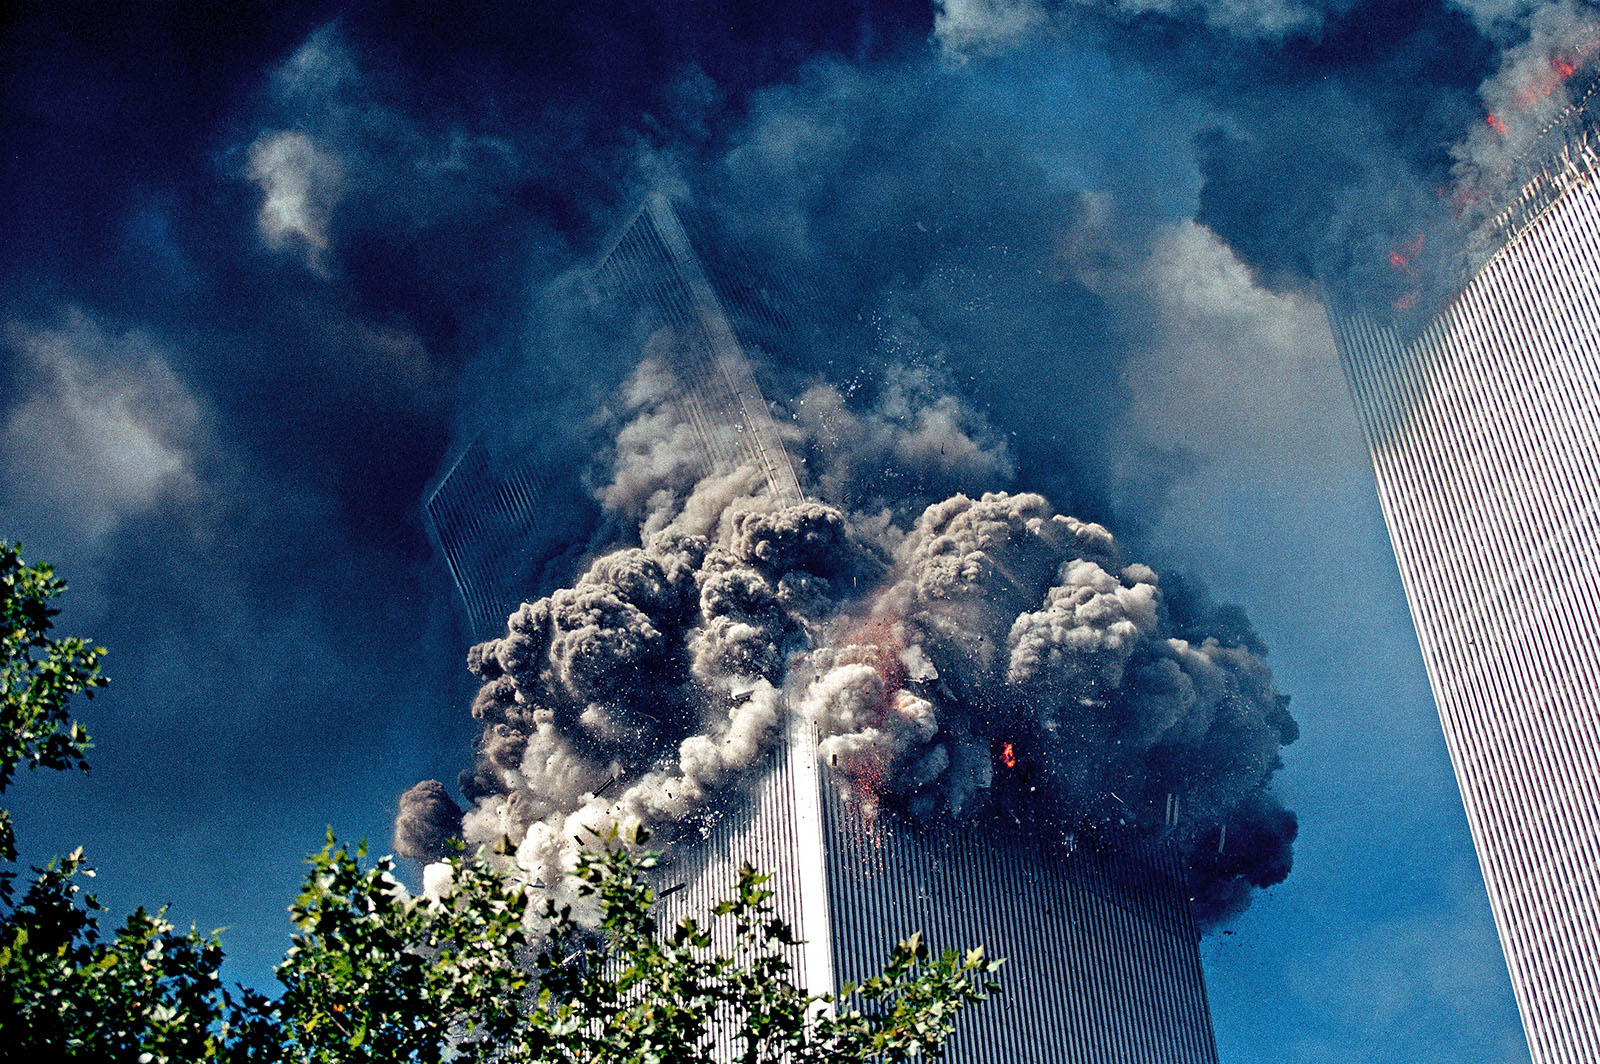 09:59 am, September 11, 2001. The south World Trade Center collapses